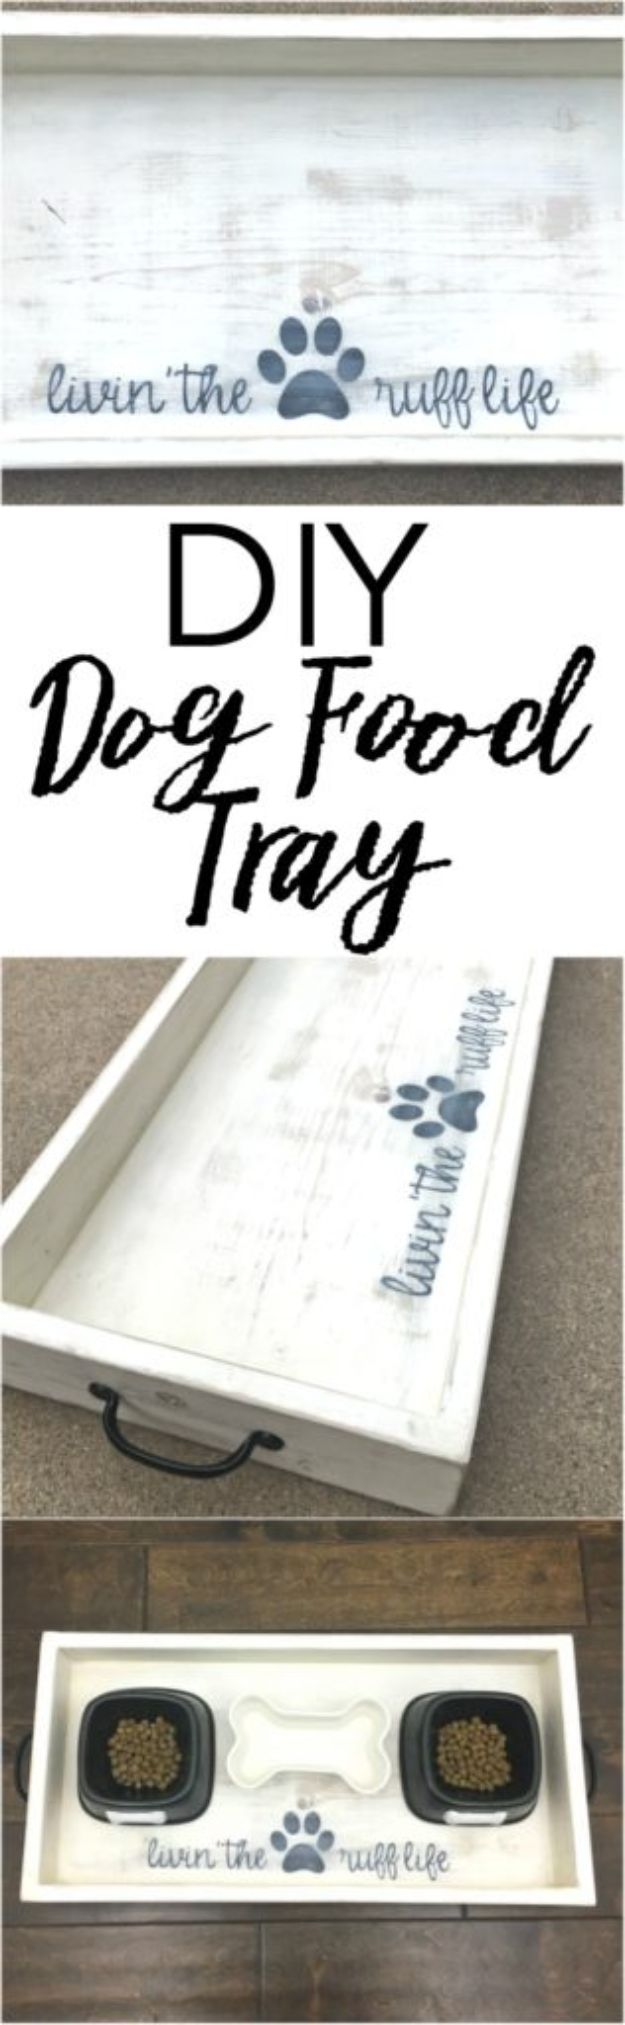 DIY Ideas With Dogs - Dog Food Wood Tray – DIY - Cute and Easy DIY Projects for Dog Lovers - Wall and Home Decor Projects, Things To Make and Sell on Etsy - Quick Gifts to Make for Friends Who Have Puppies and Doggies - Homemade No Sew Projects- Fun Jewelry, Cool Clothes and Accessories #dogs #crafts #diyideas